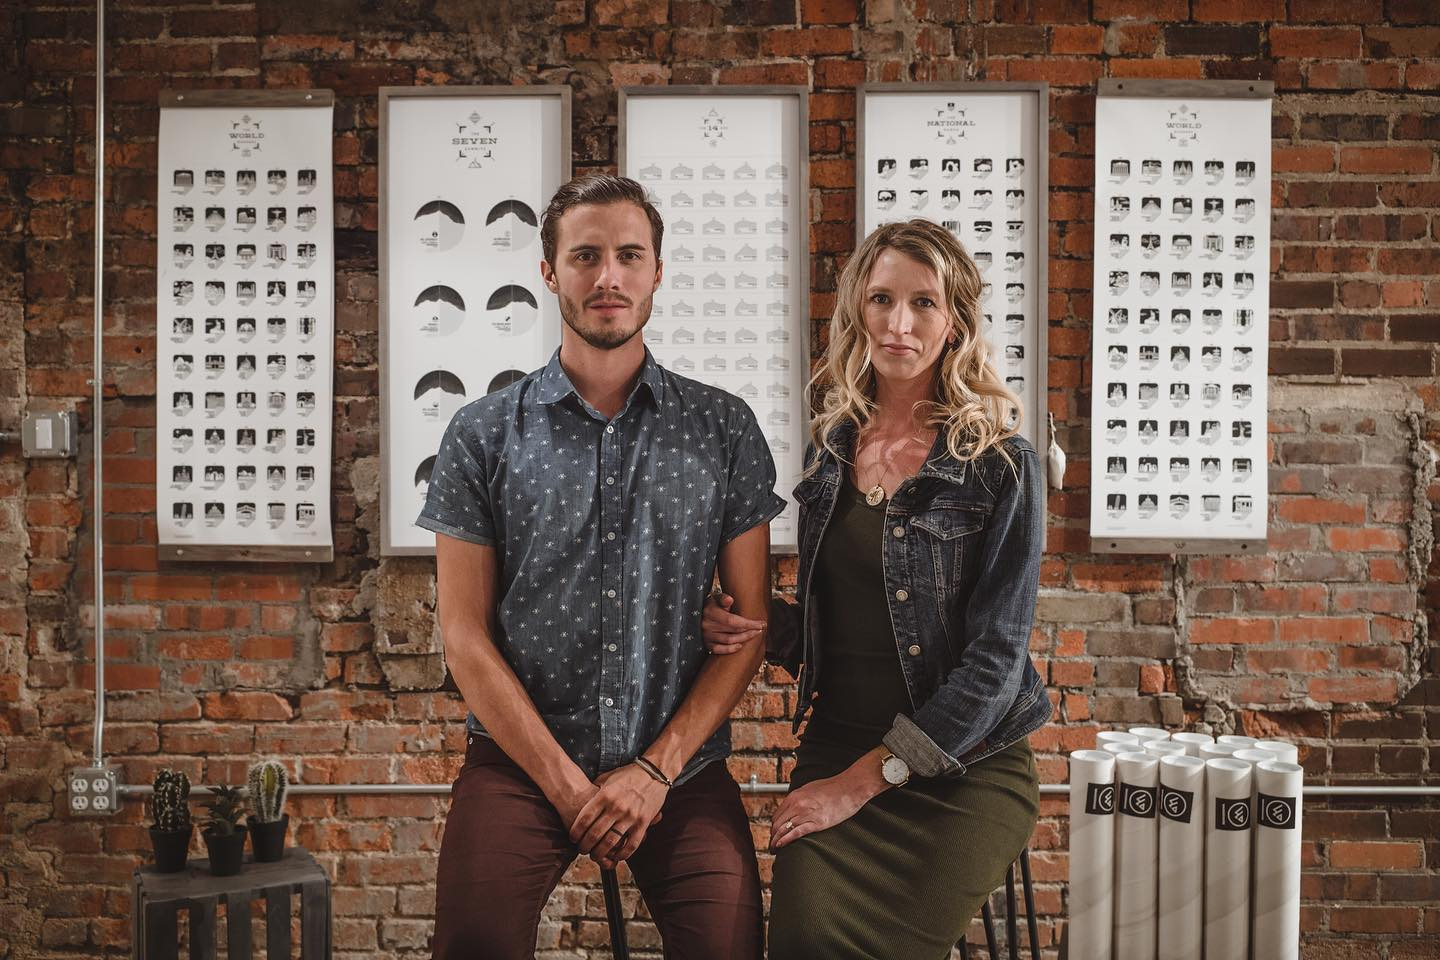 Image of the owners of WANDERWIDE, nathan and kait